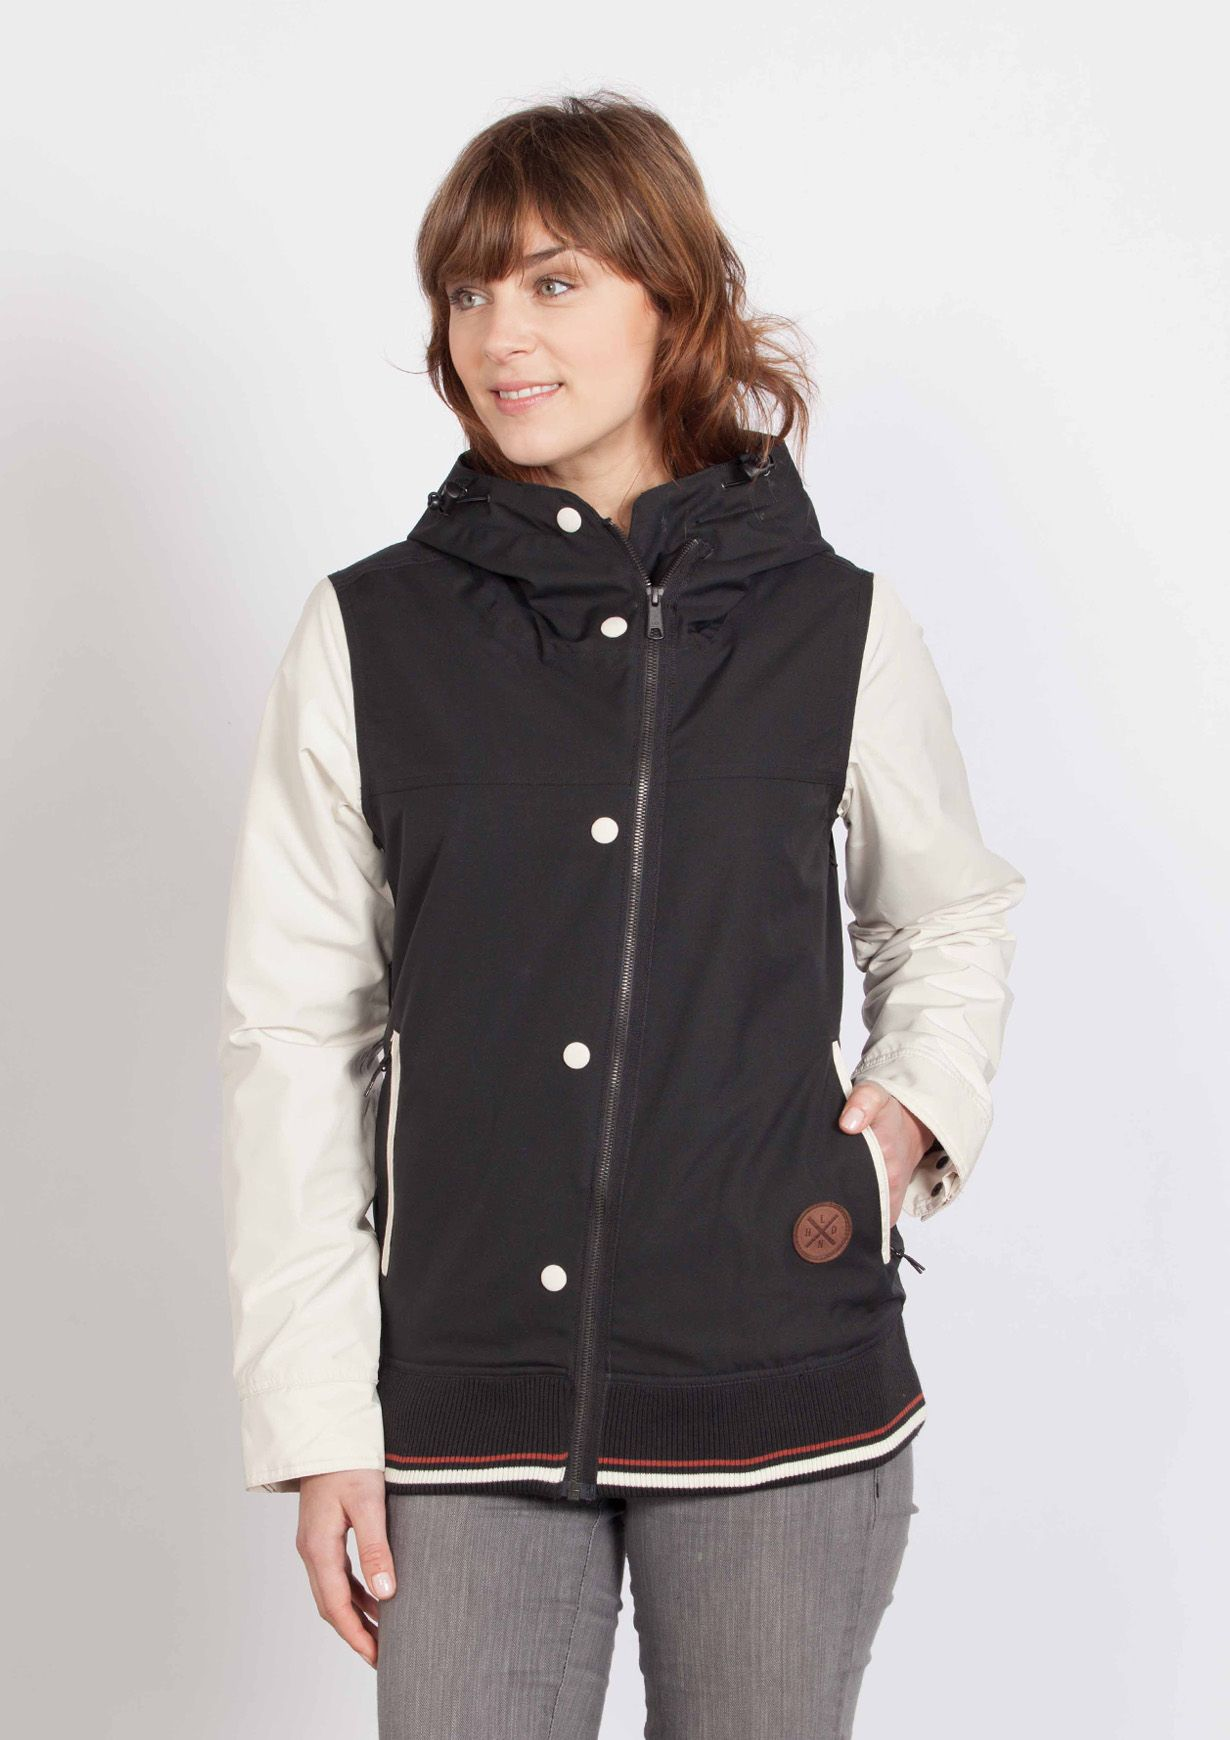 love this holden jacket | Holden outerwear, Womens snowboard